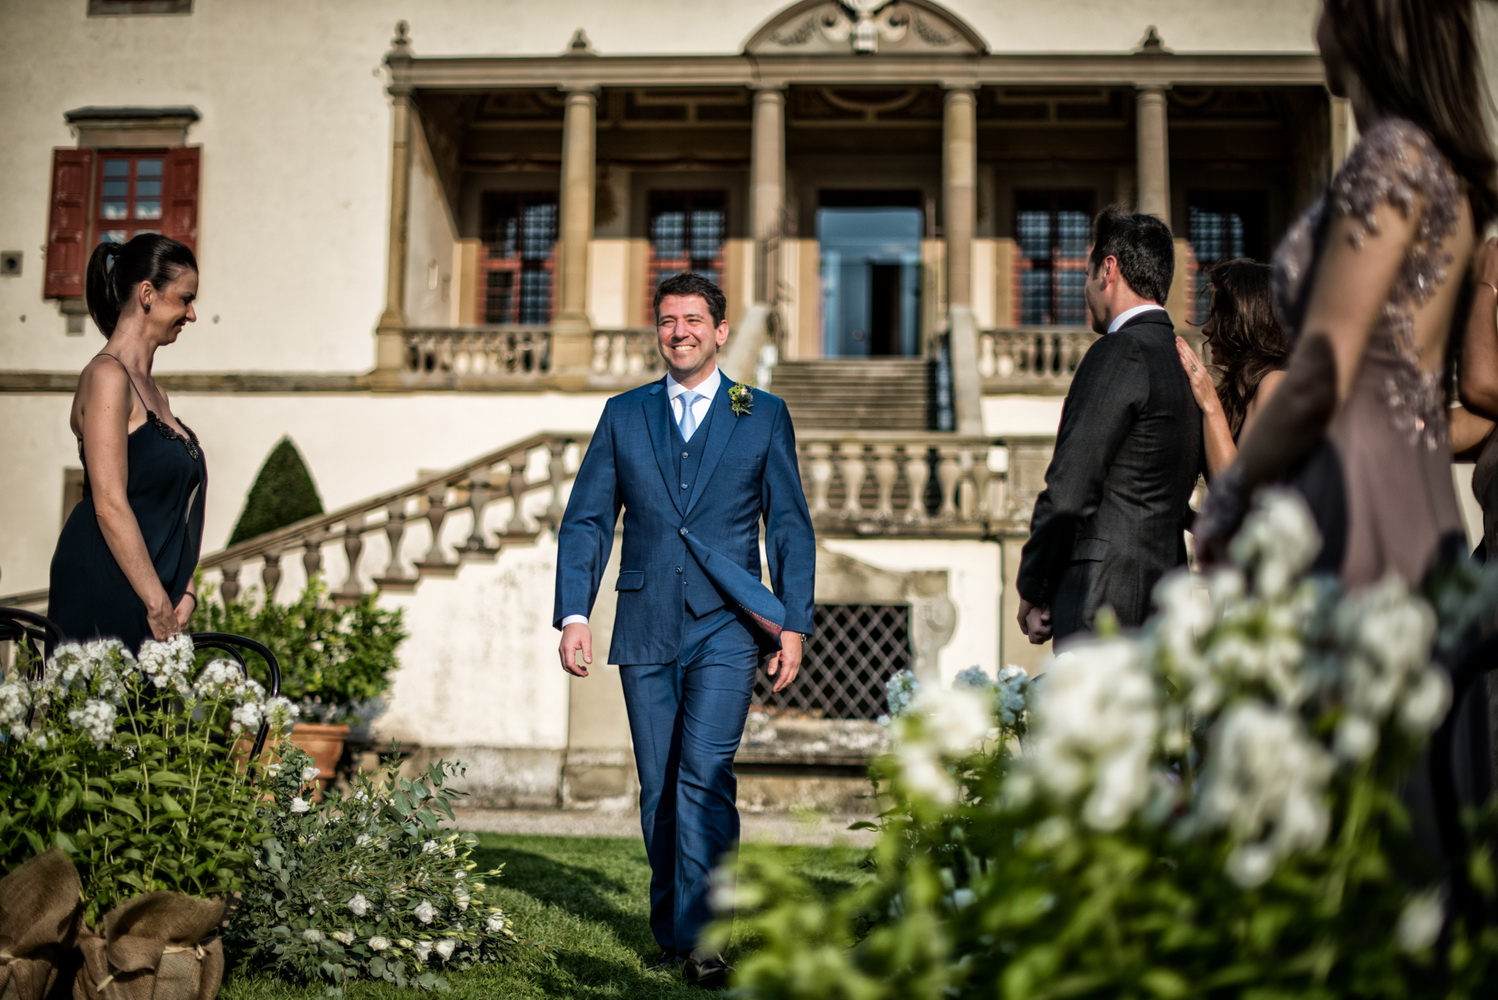 Destination Wedding Toscana | Caroline e Fernando destination wedding na toscana | caroline e fernando Destination Wedding na Toscana | Caroline e Fernando marco zammarchi destination wedding 12